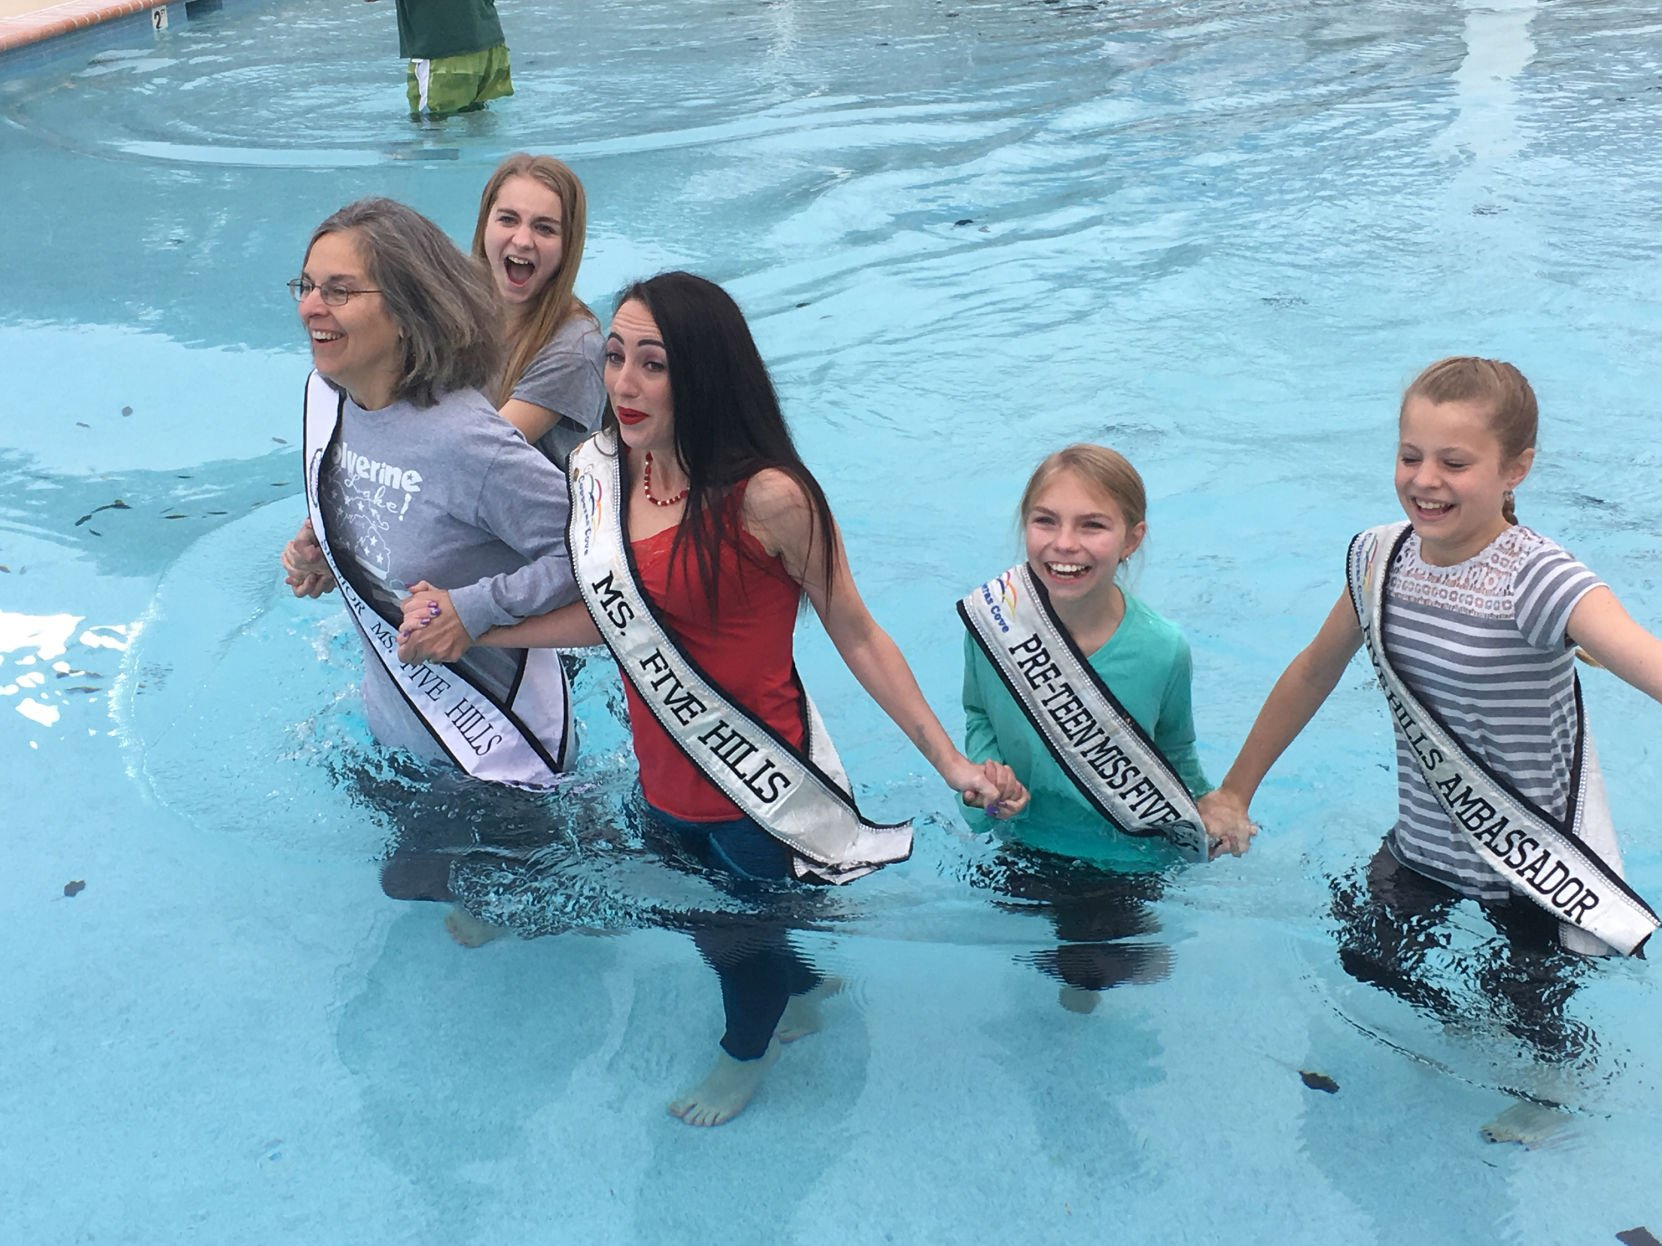 Happening this weekend: Polar Bear Plunge and more in the Killeen-Fort Hood area